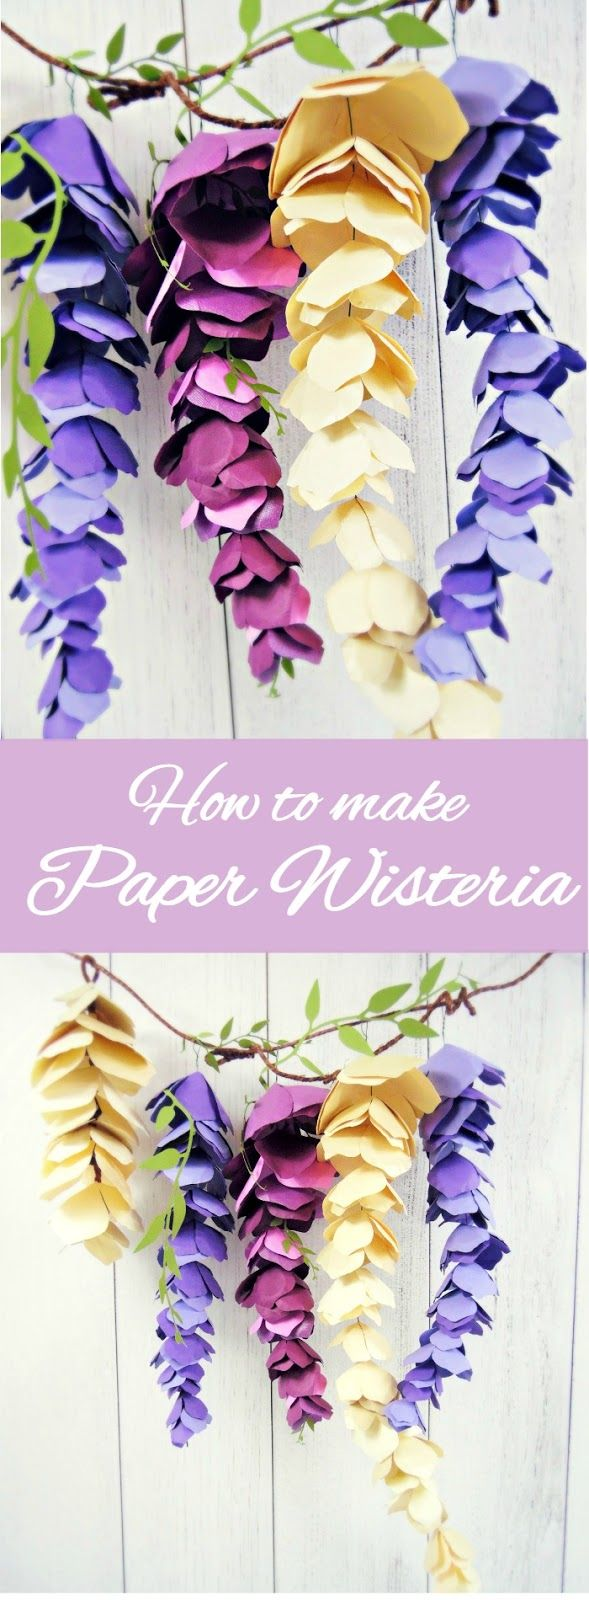 How To Make Hanging Paper Wisteria Diy Paper Flowers Wisteria